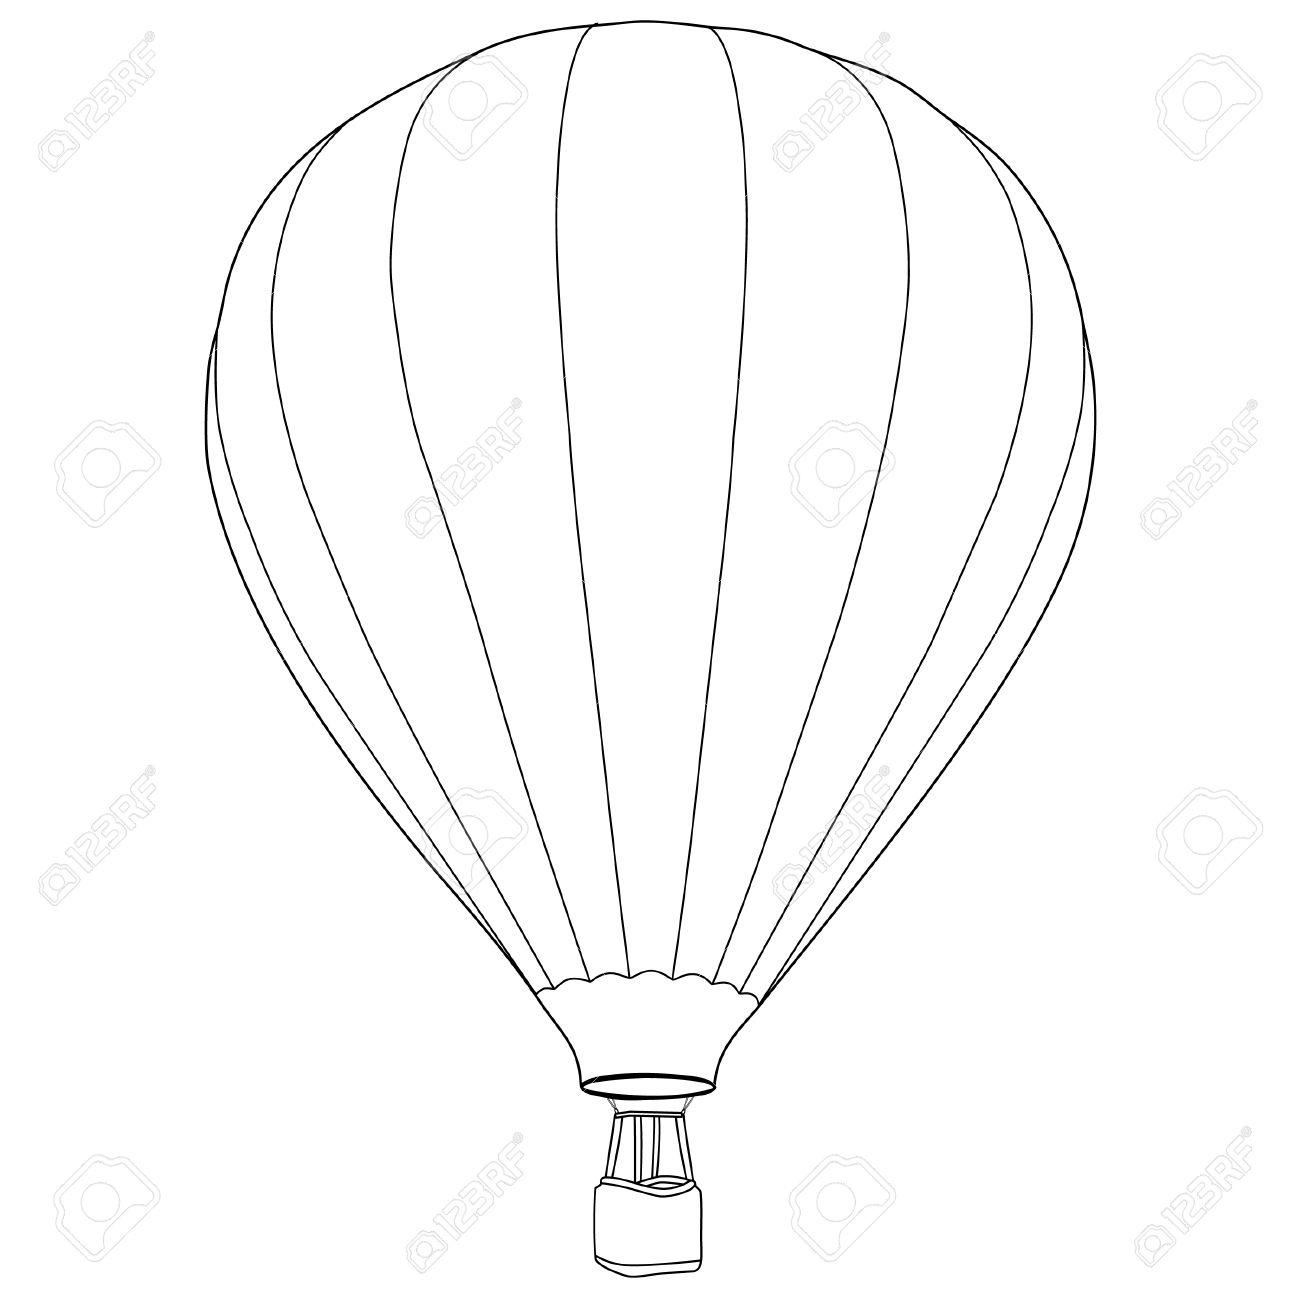 1300x1300 Drawing Of A Hot Air Balloon Hot Air Balloon Clipart Line Drawing